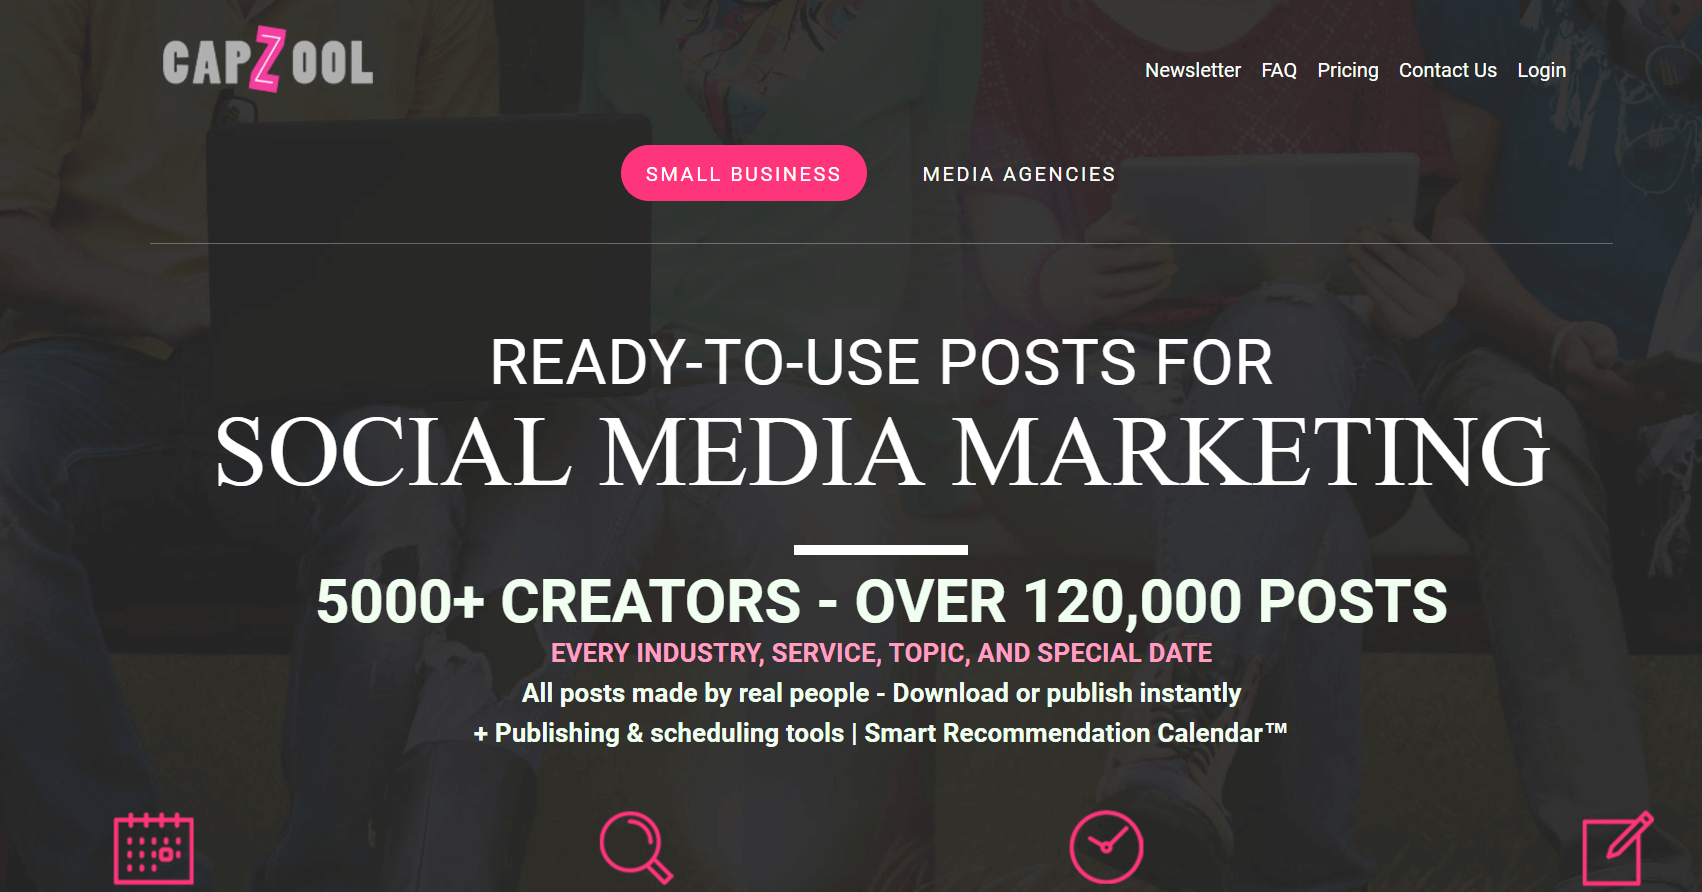 Capzool can create custom designed social media images for you